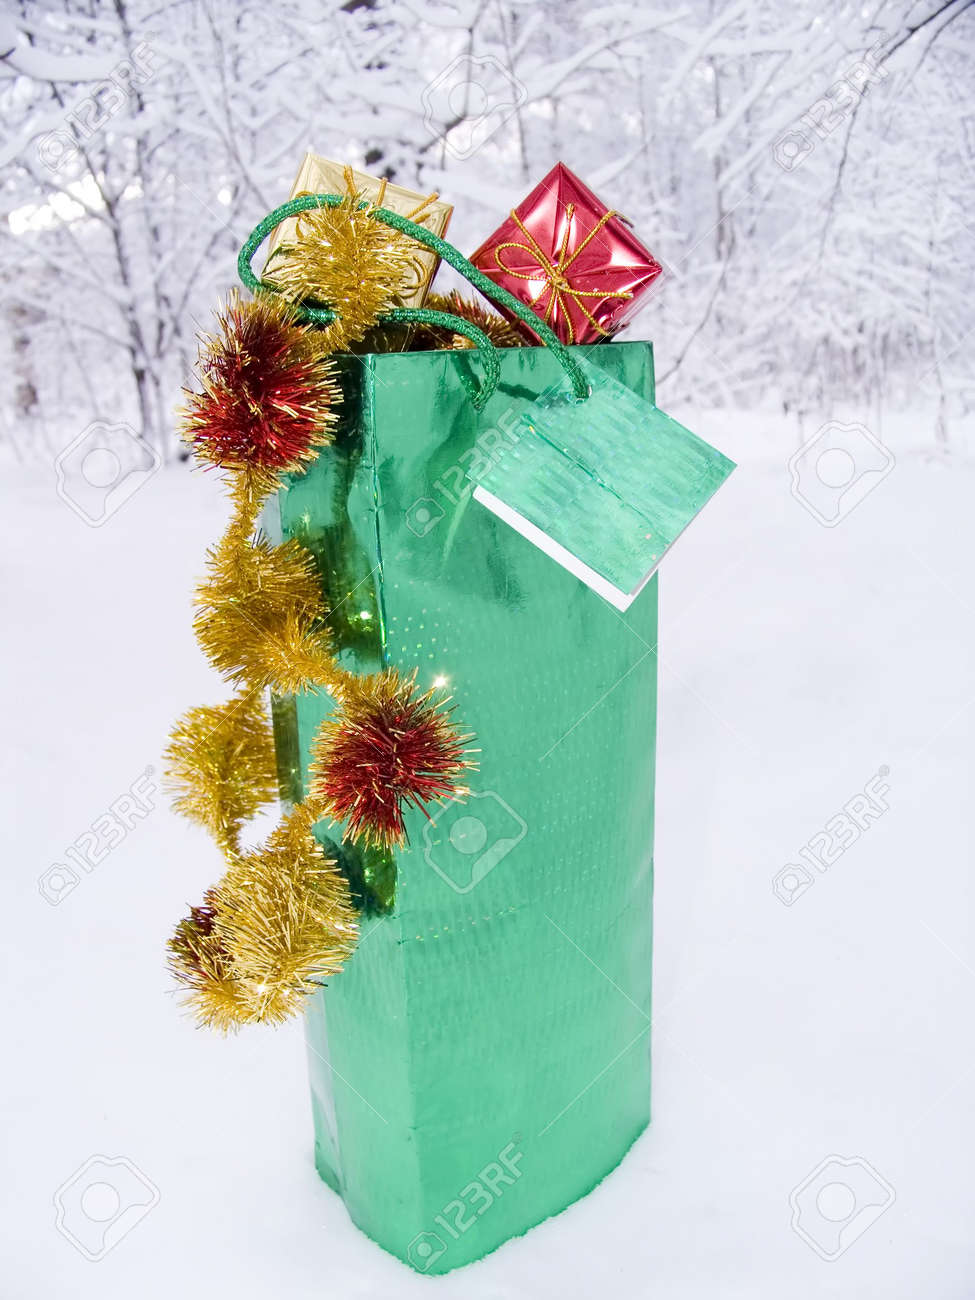 Box with gifts for Christmas on snow in a winter snow-covered wood Stock Photo - 609199